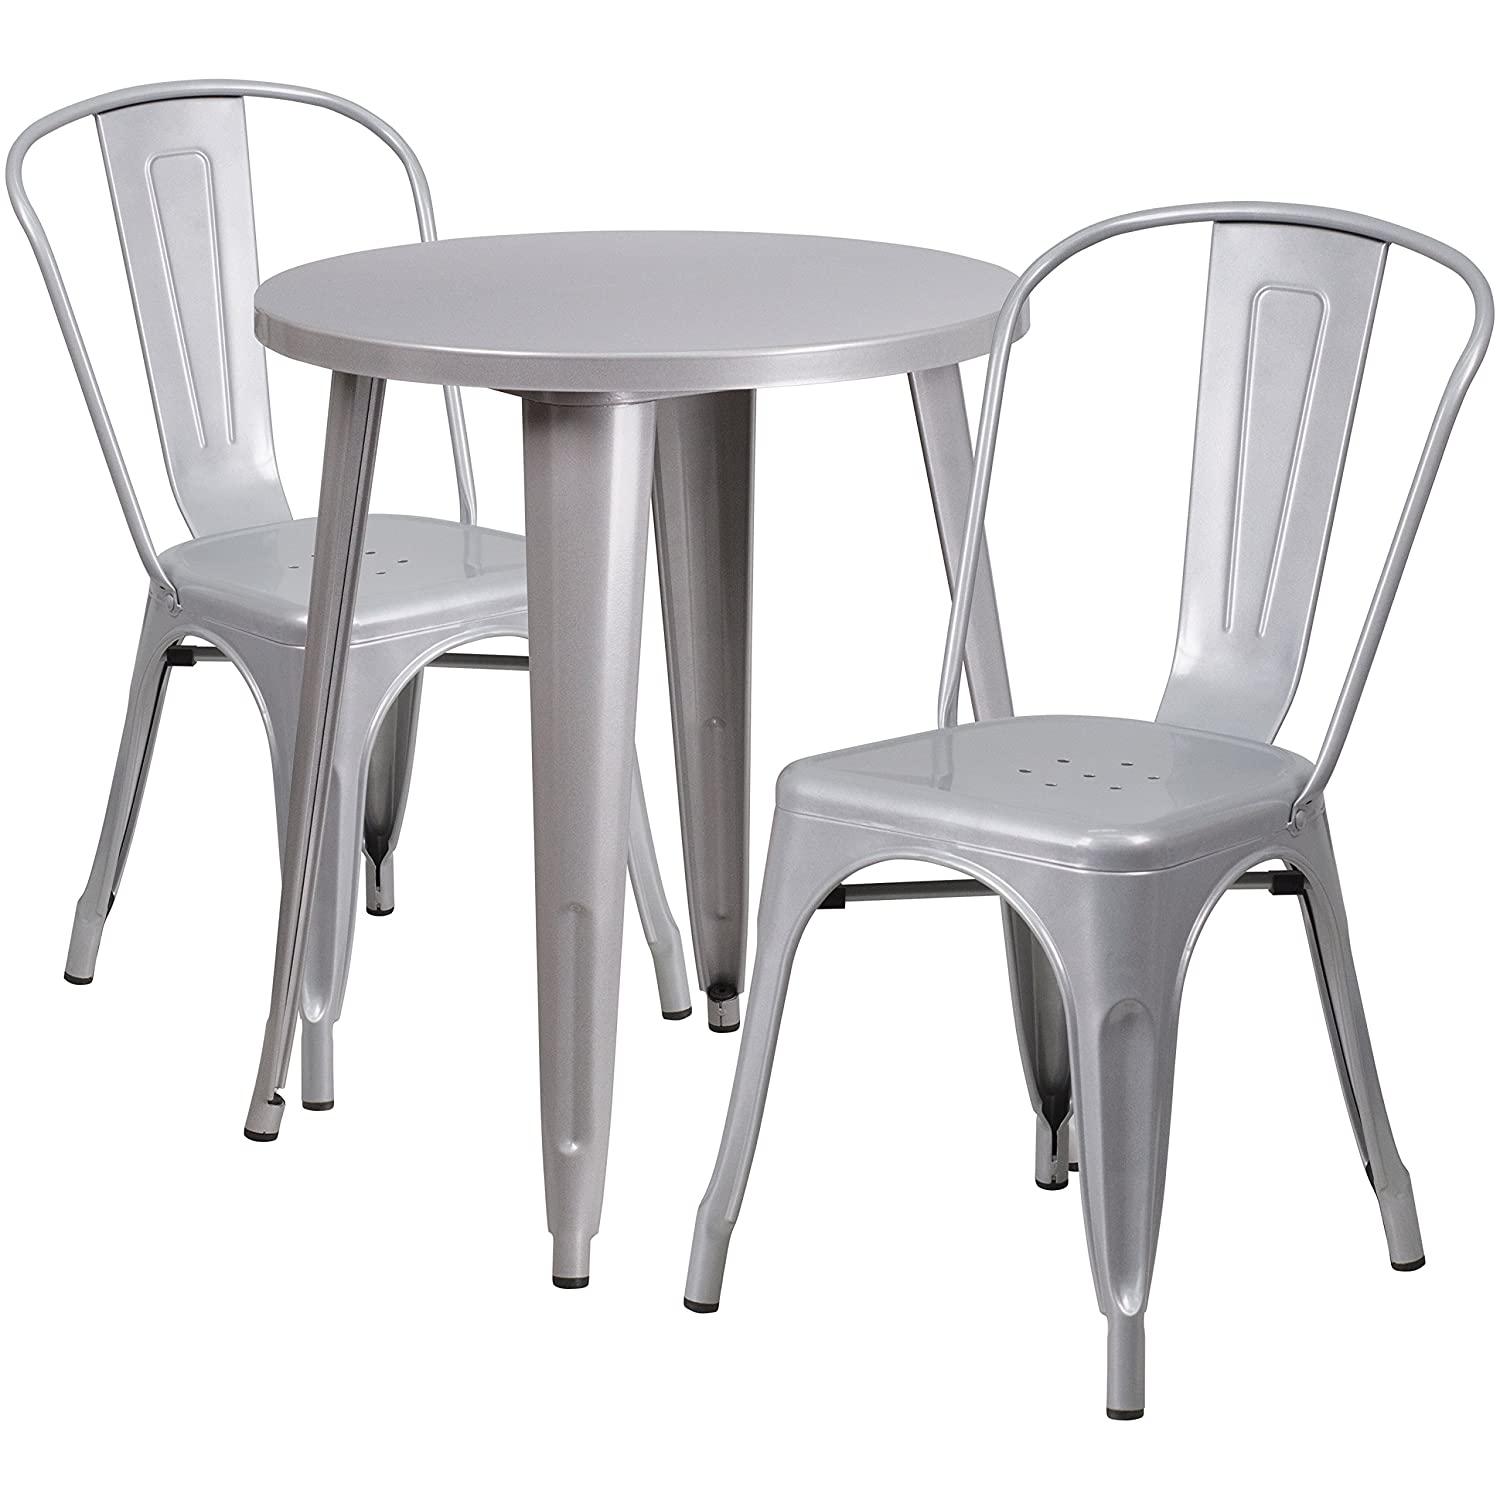 Fine Flash Furniture 24 Round Silver Metal Indoor Outdoor Table Set With 2 Cafe Chairs Interior Design Ideas Gresisoteloinfo